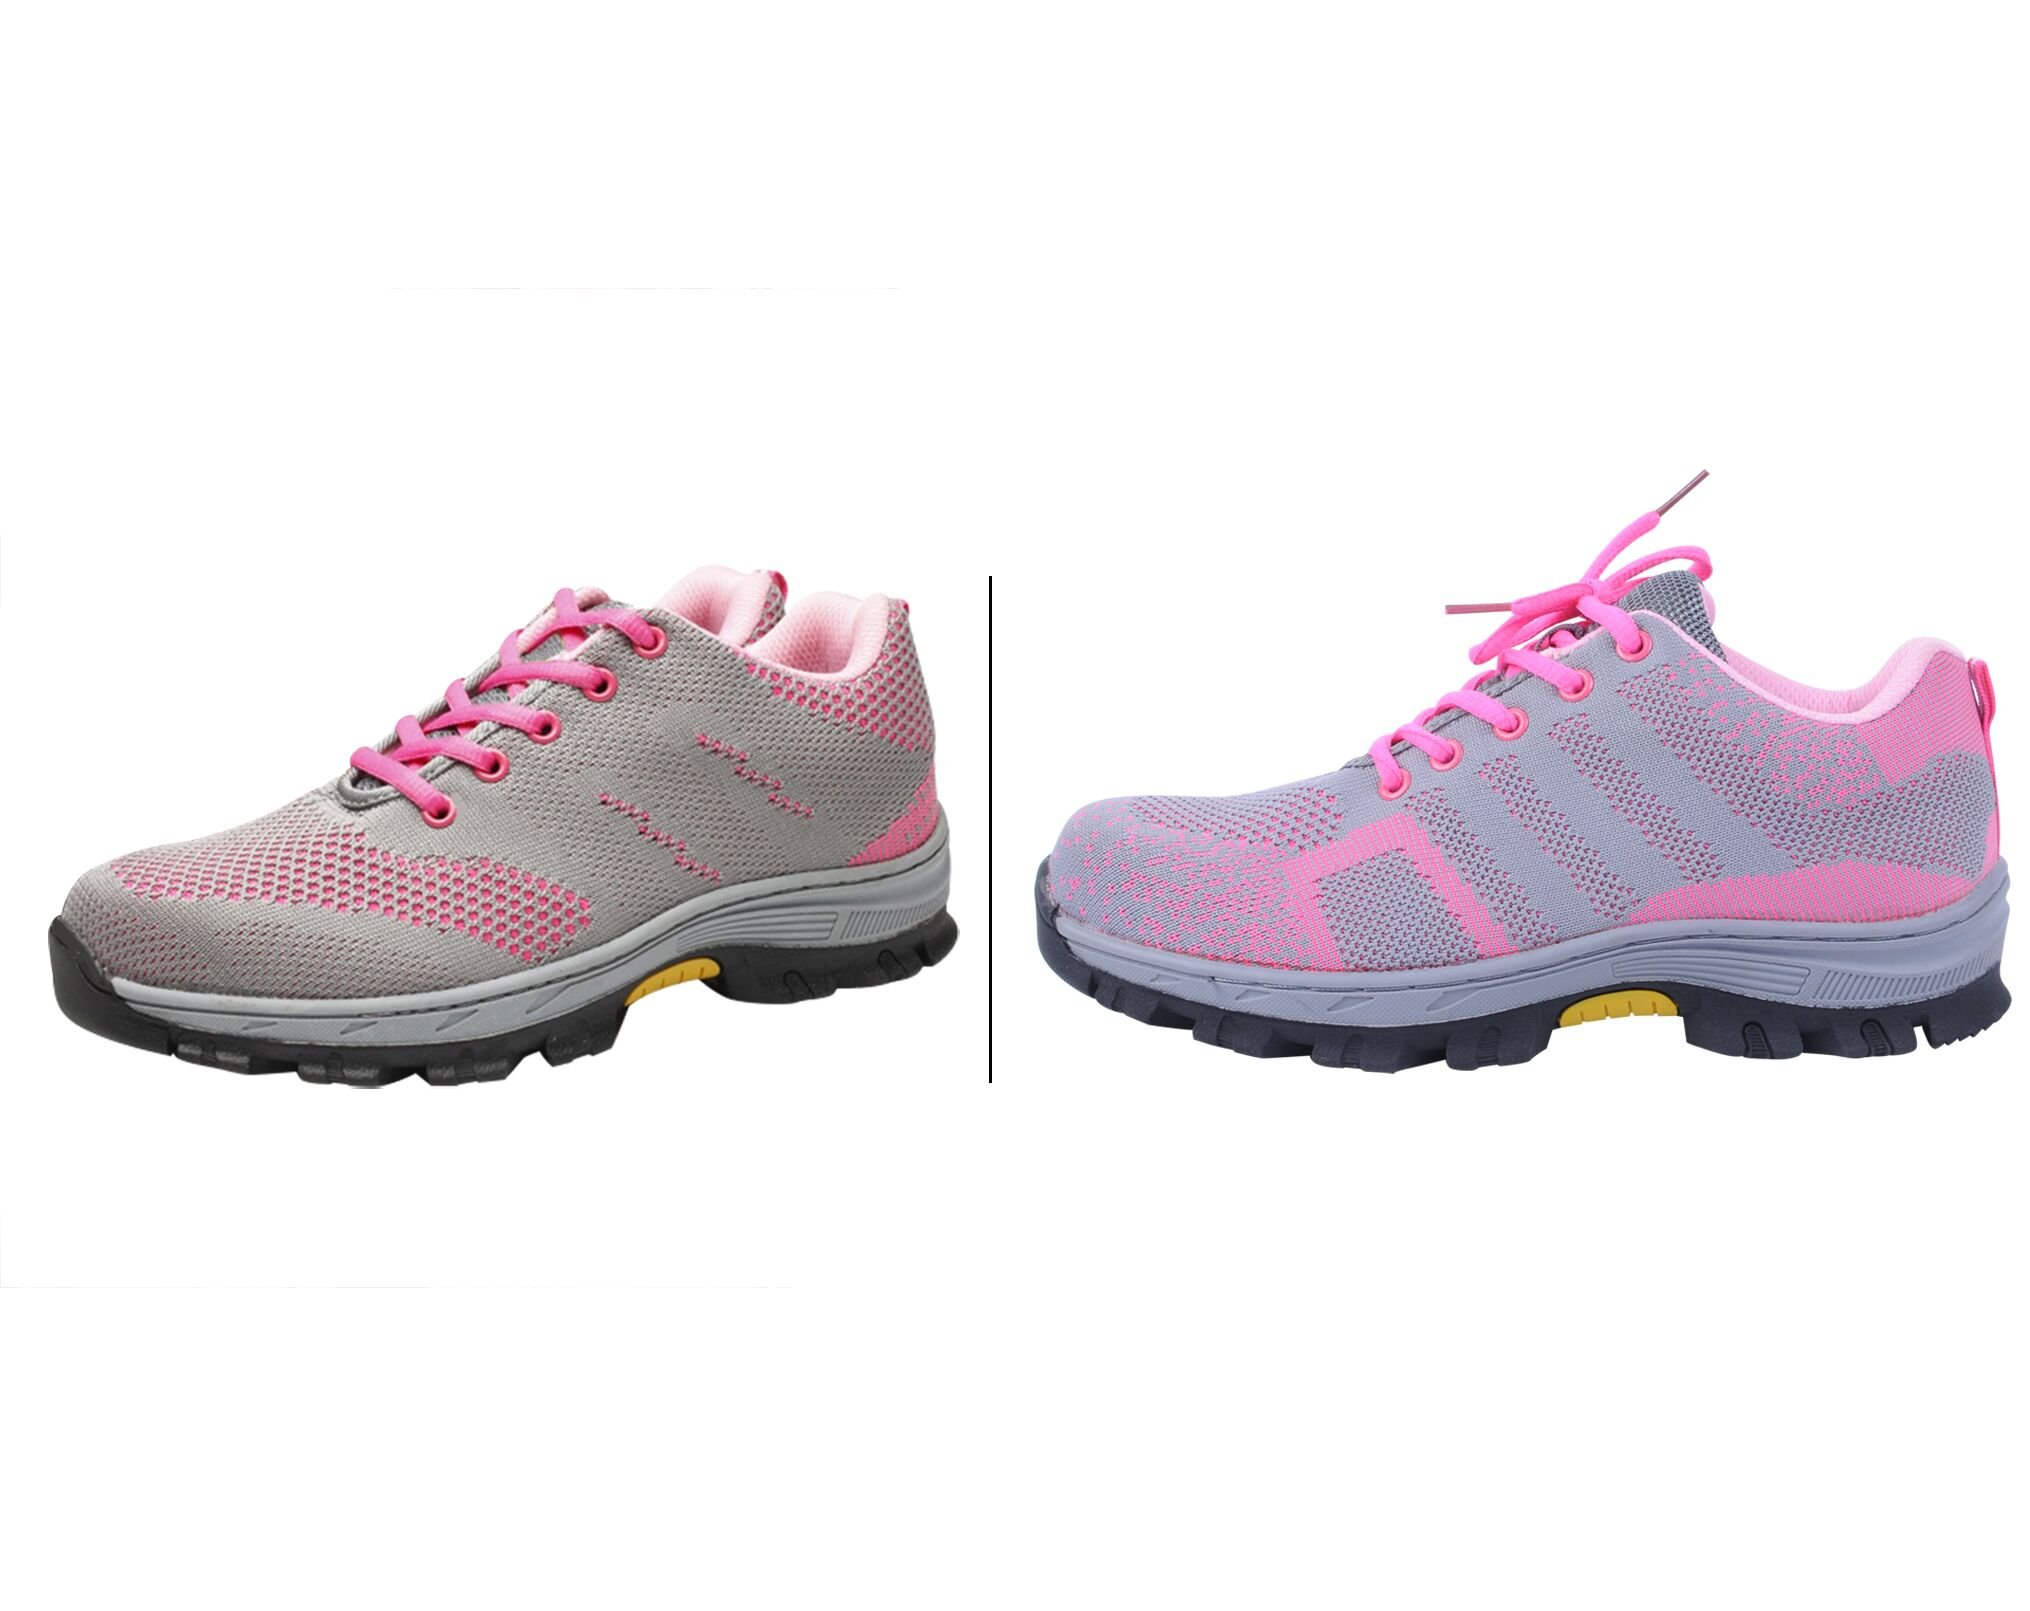 Optimal Women's Safety Shoes Work Shoes Protect Toe Shoes …